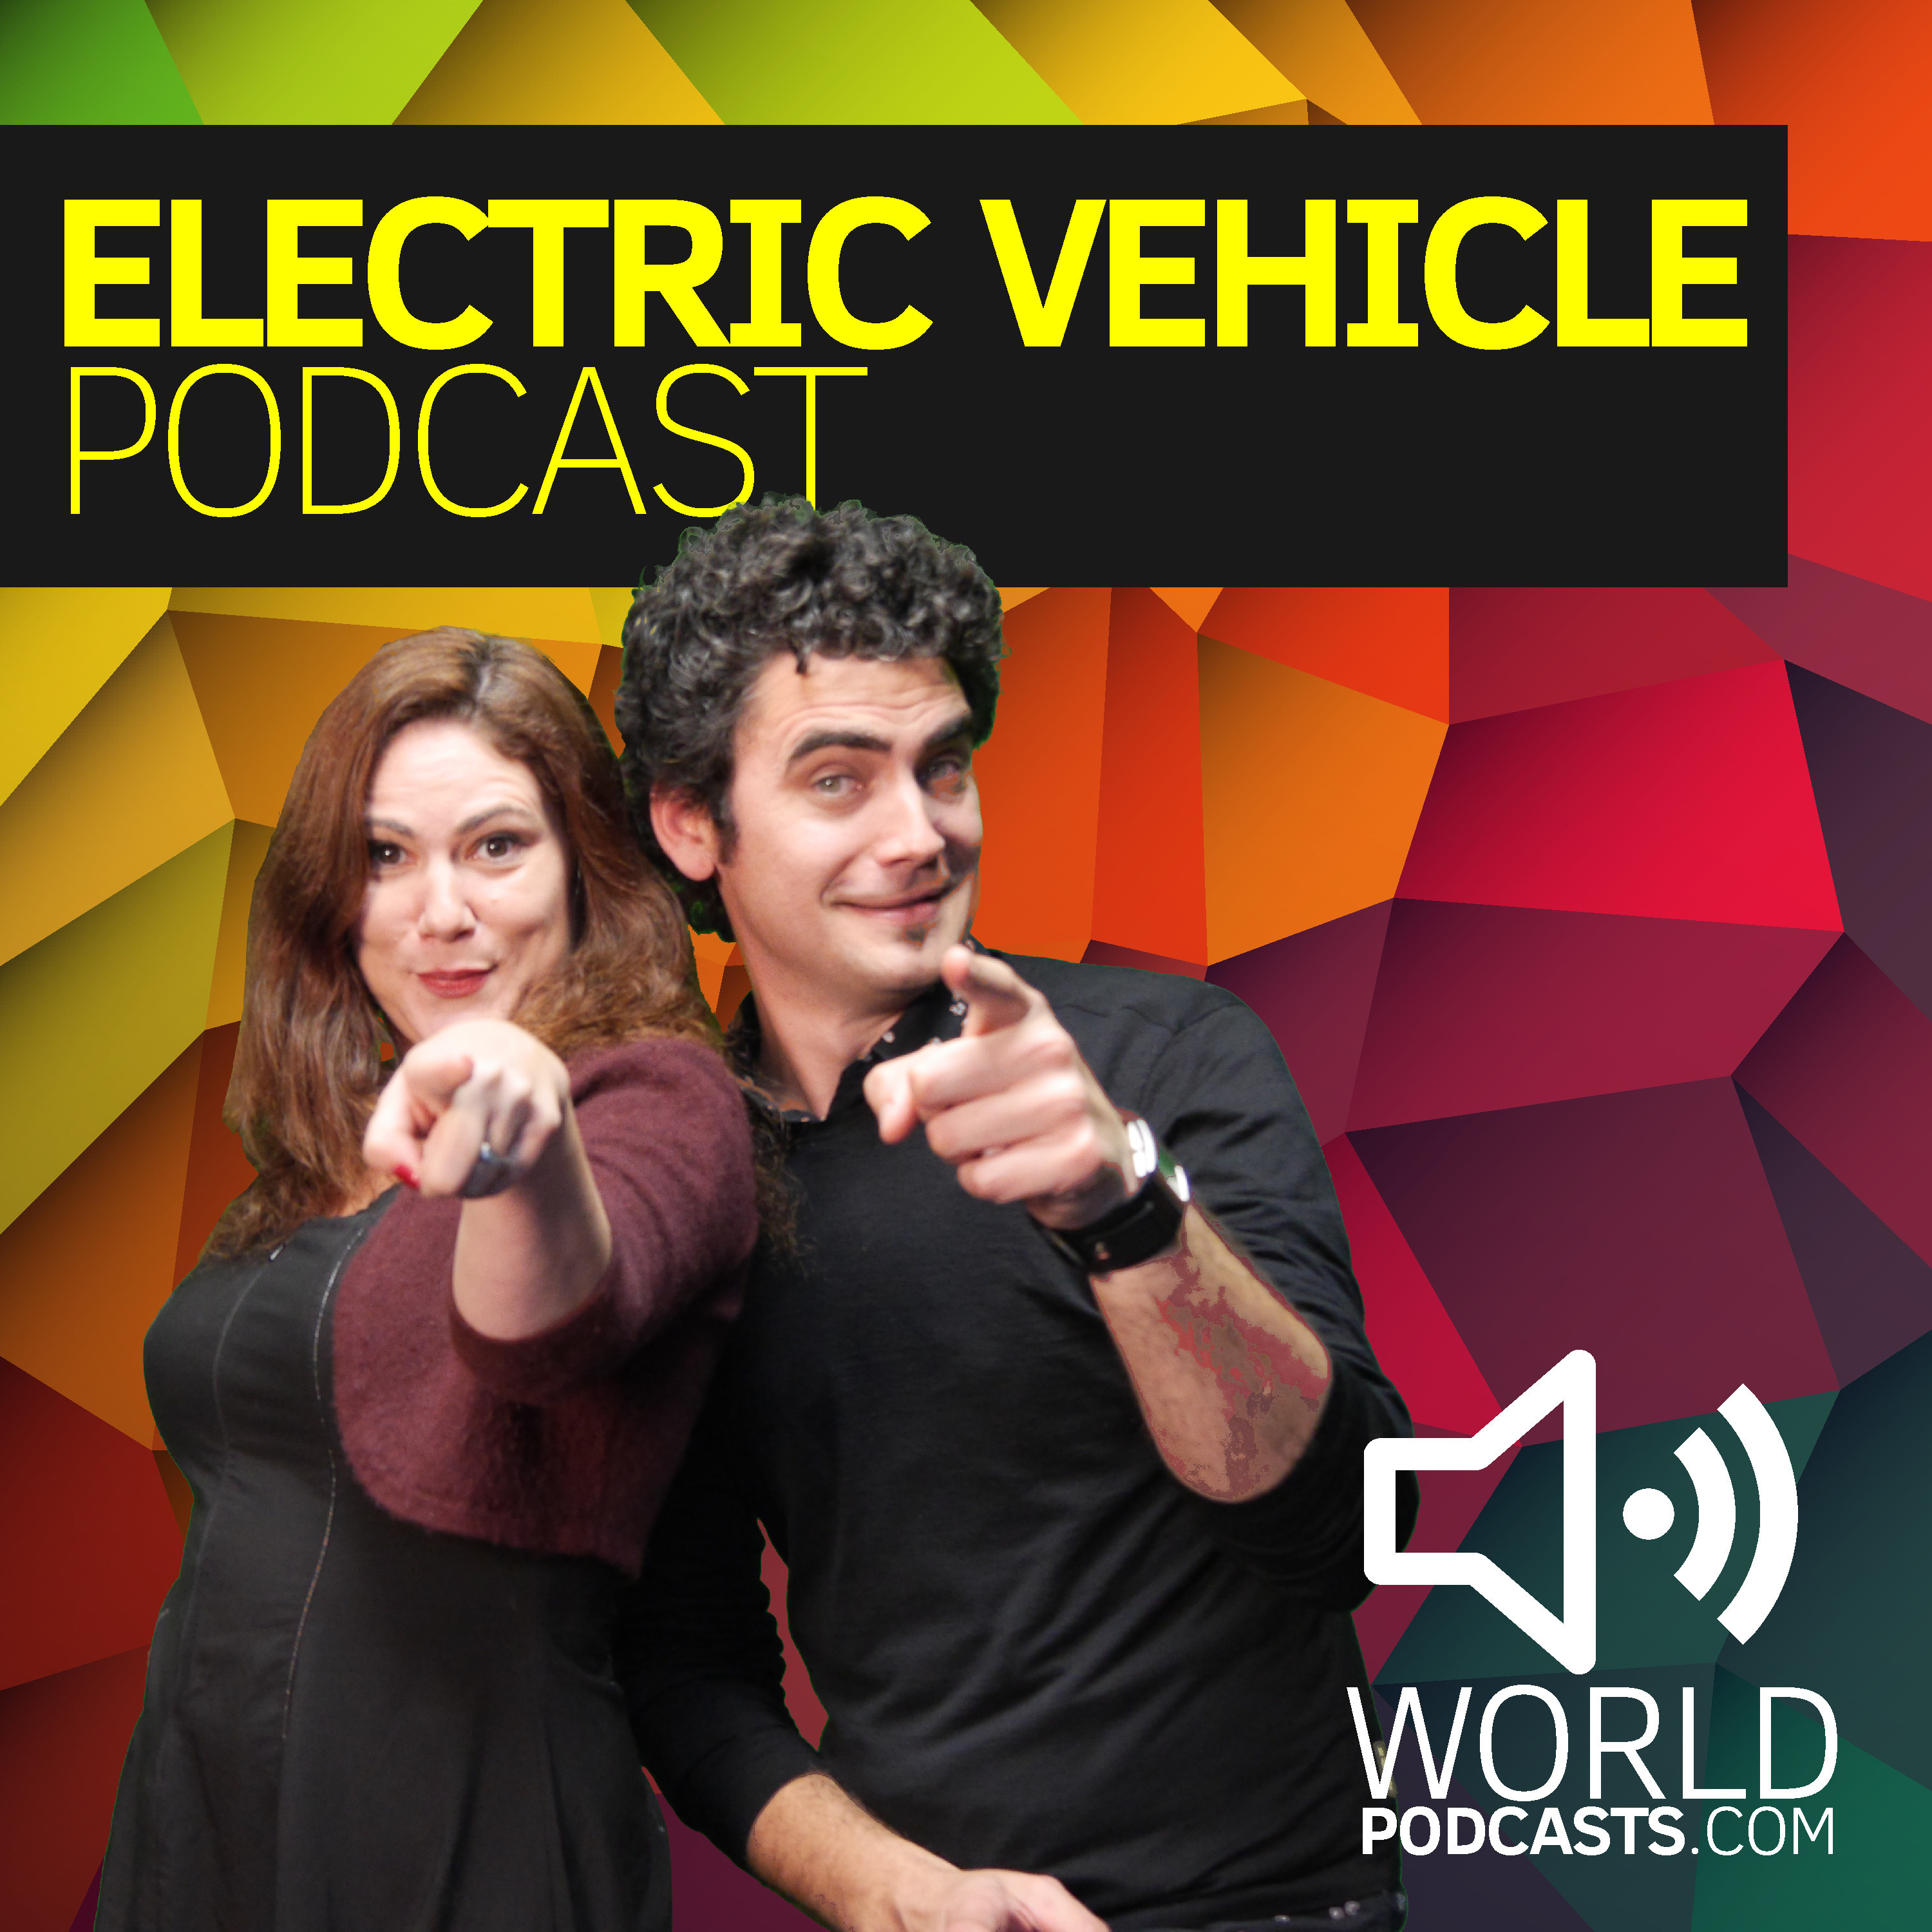 EV Podcast: EV Subsidies and The Good Car Salesman